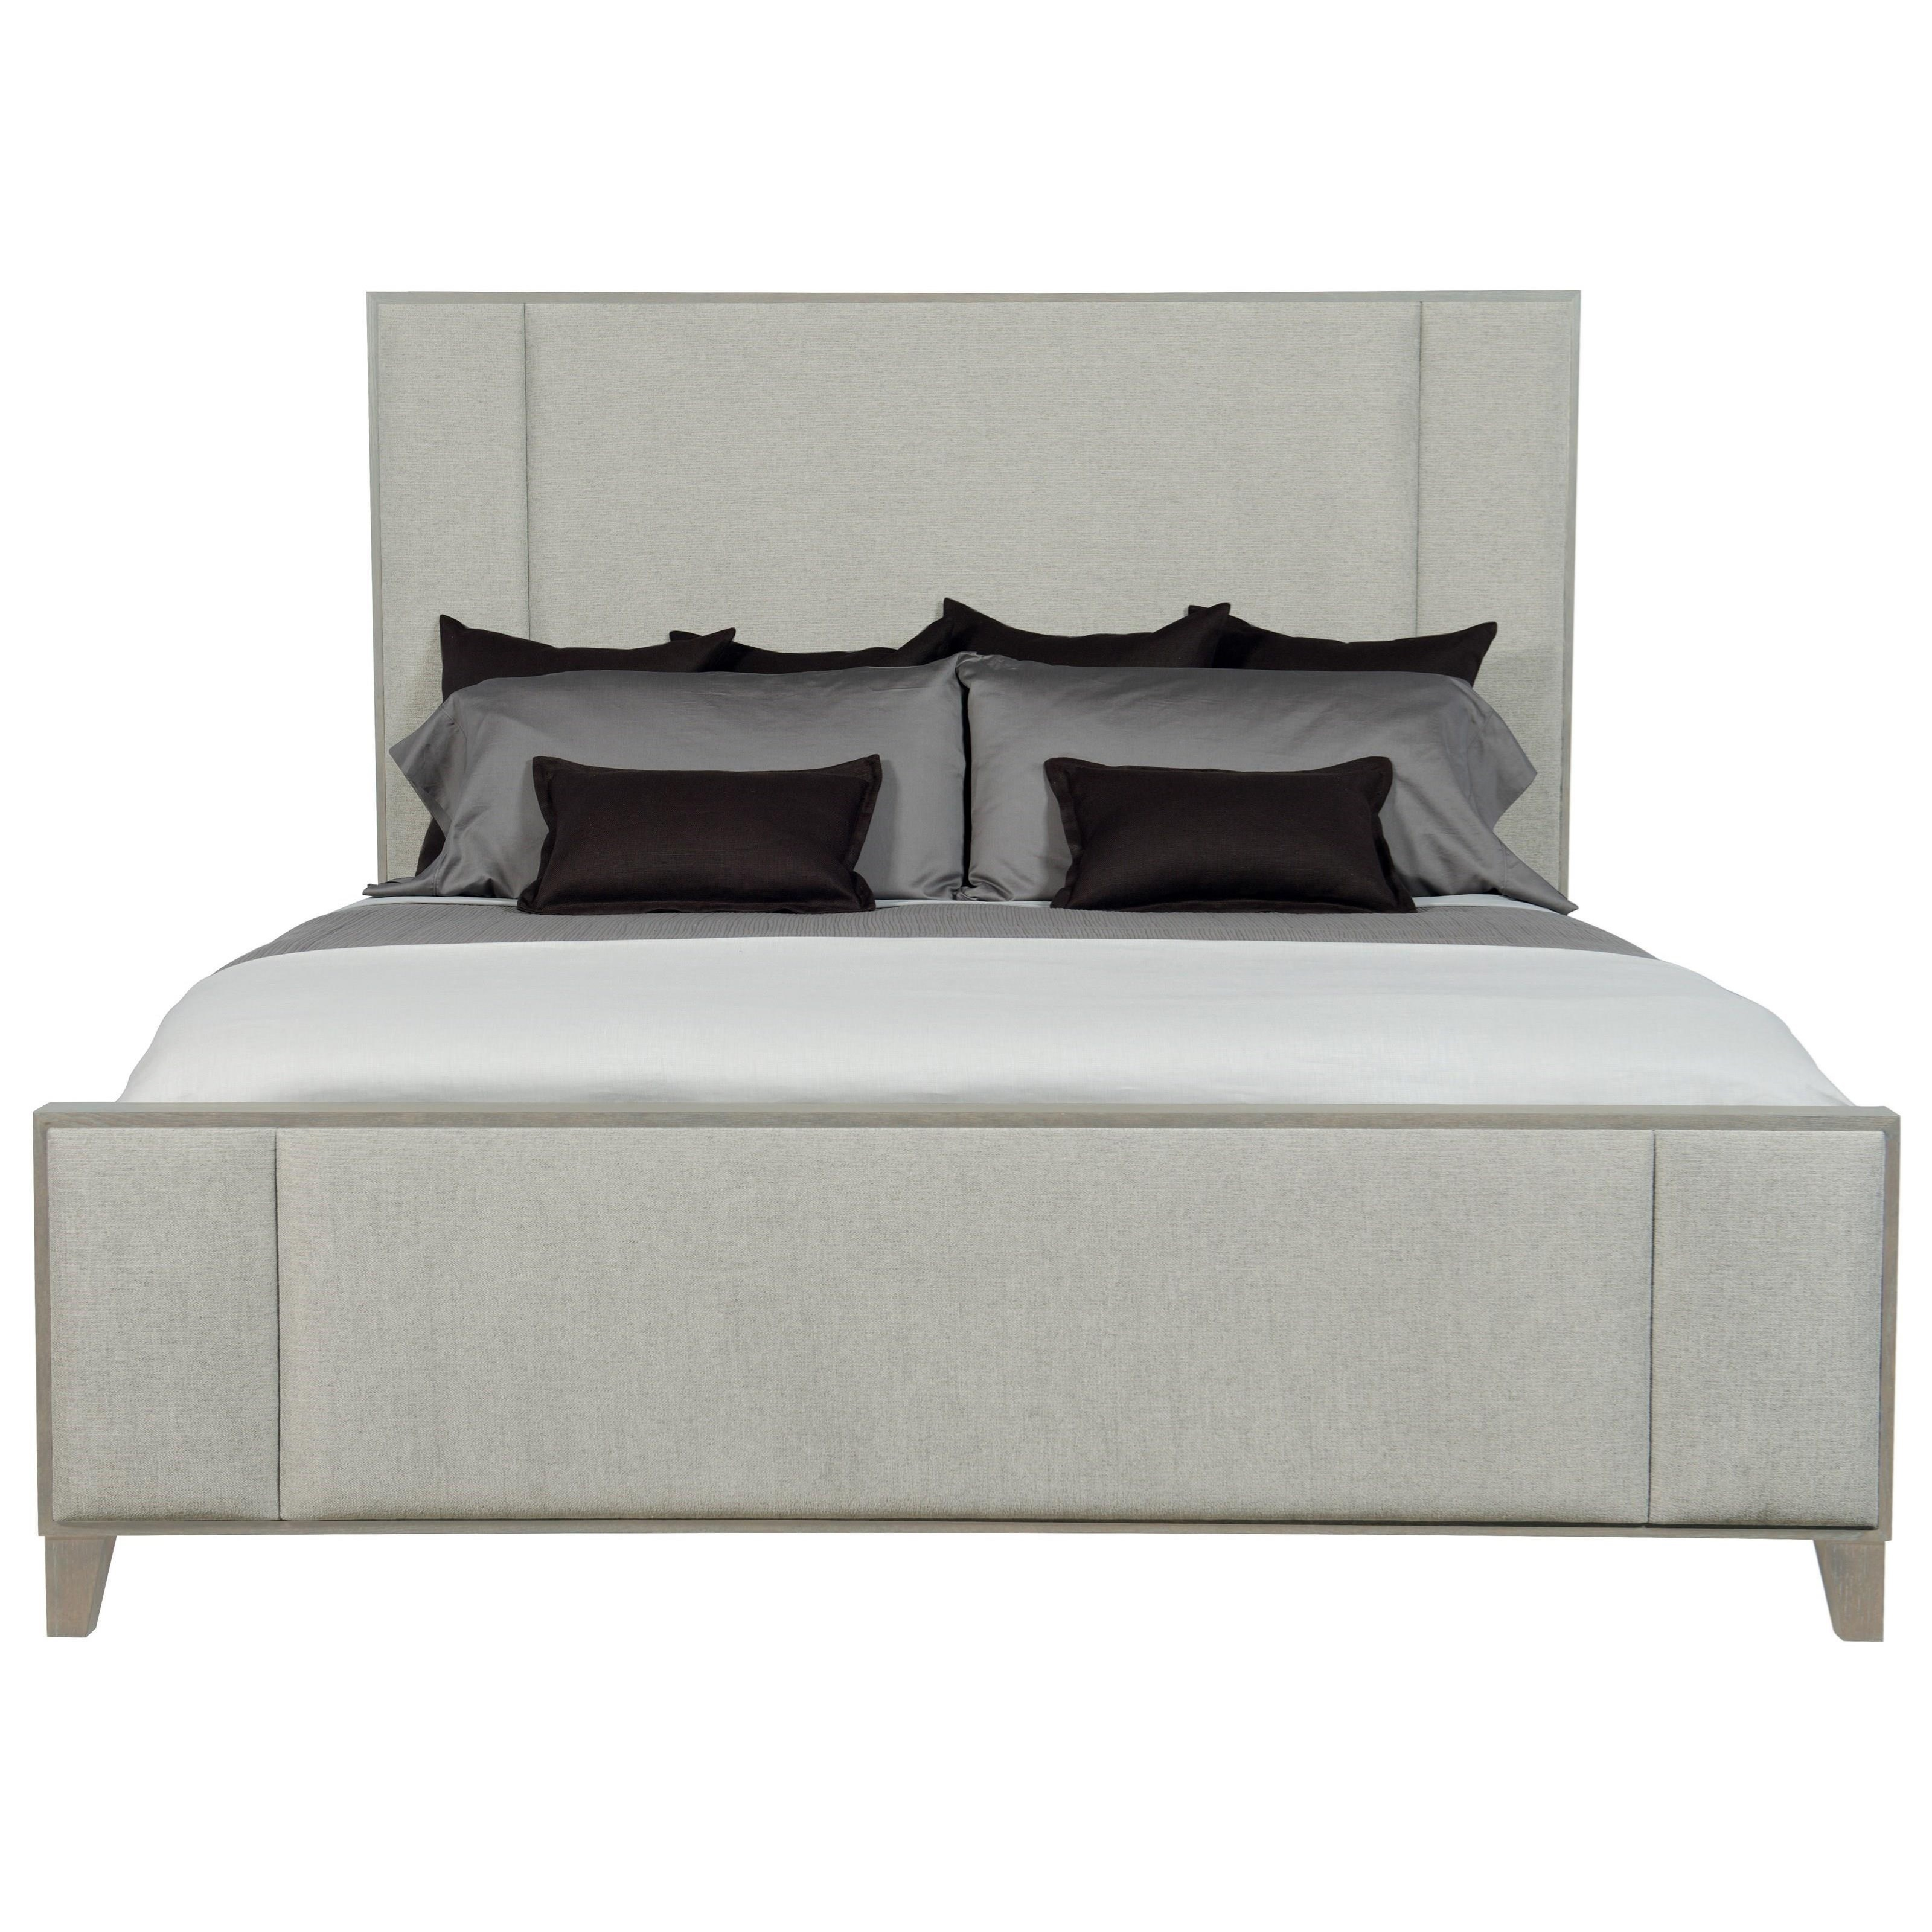 Bernhardt Linea 384 H61g 384 Fr1g Transitional Queen Upholstered Bed With Panel